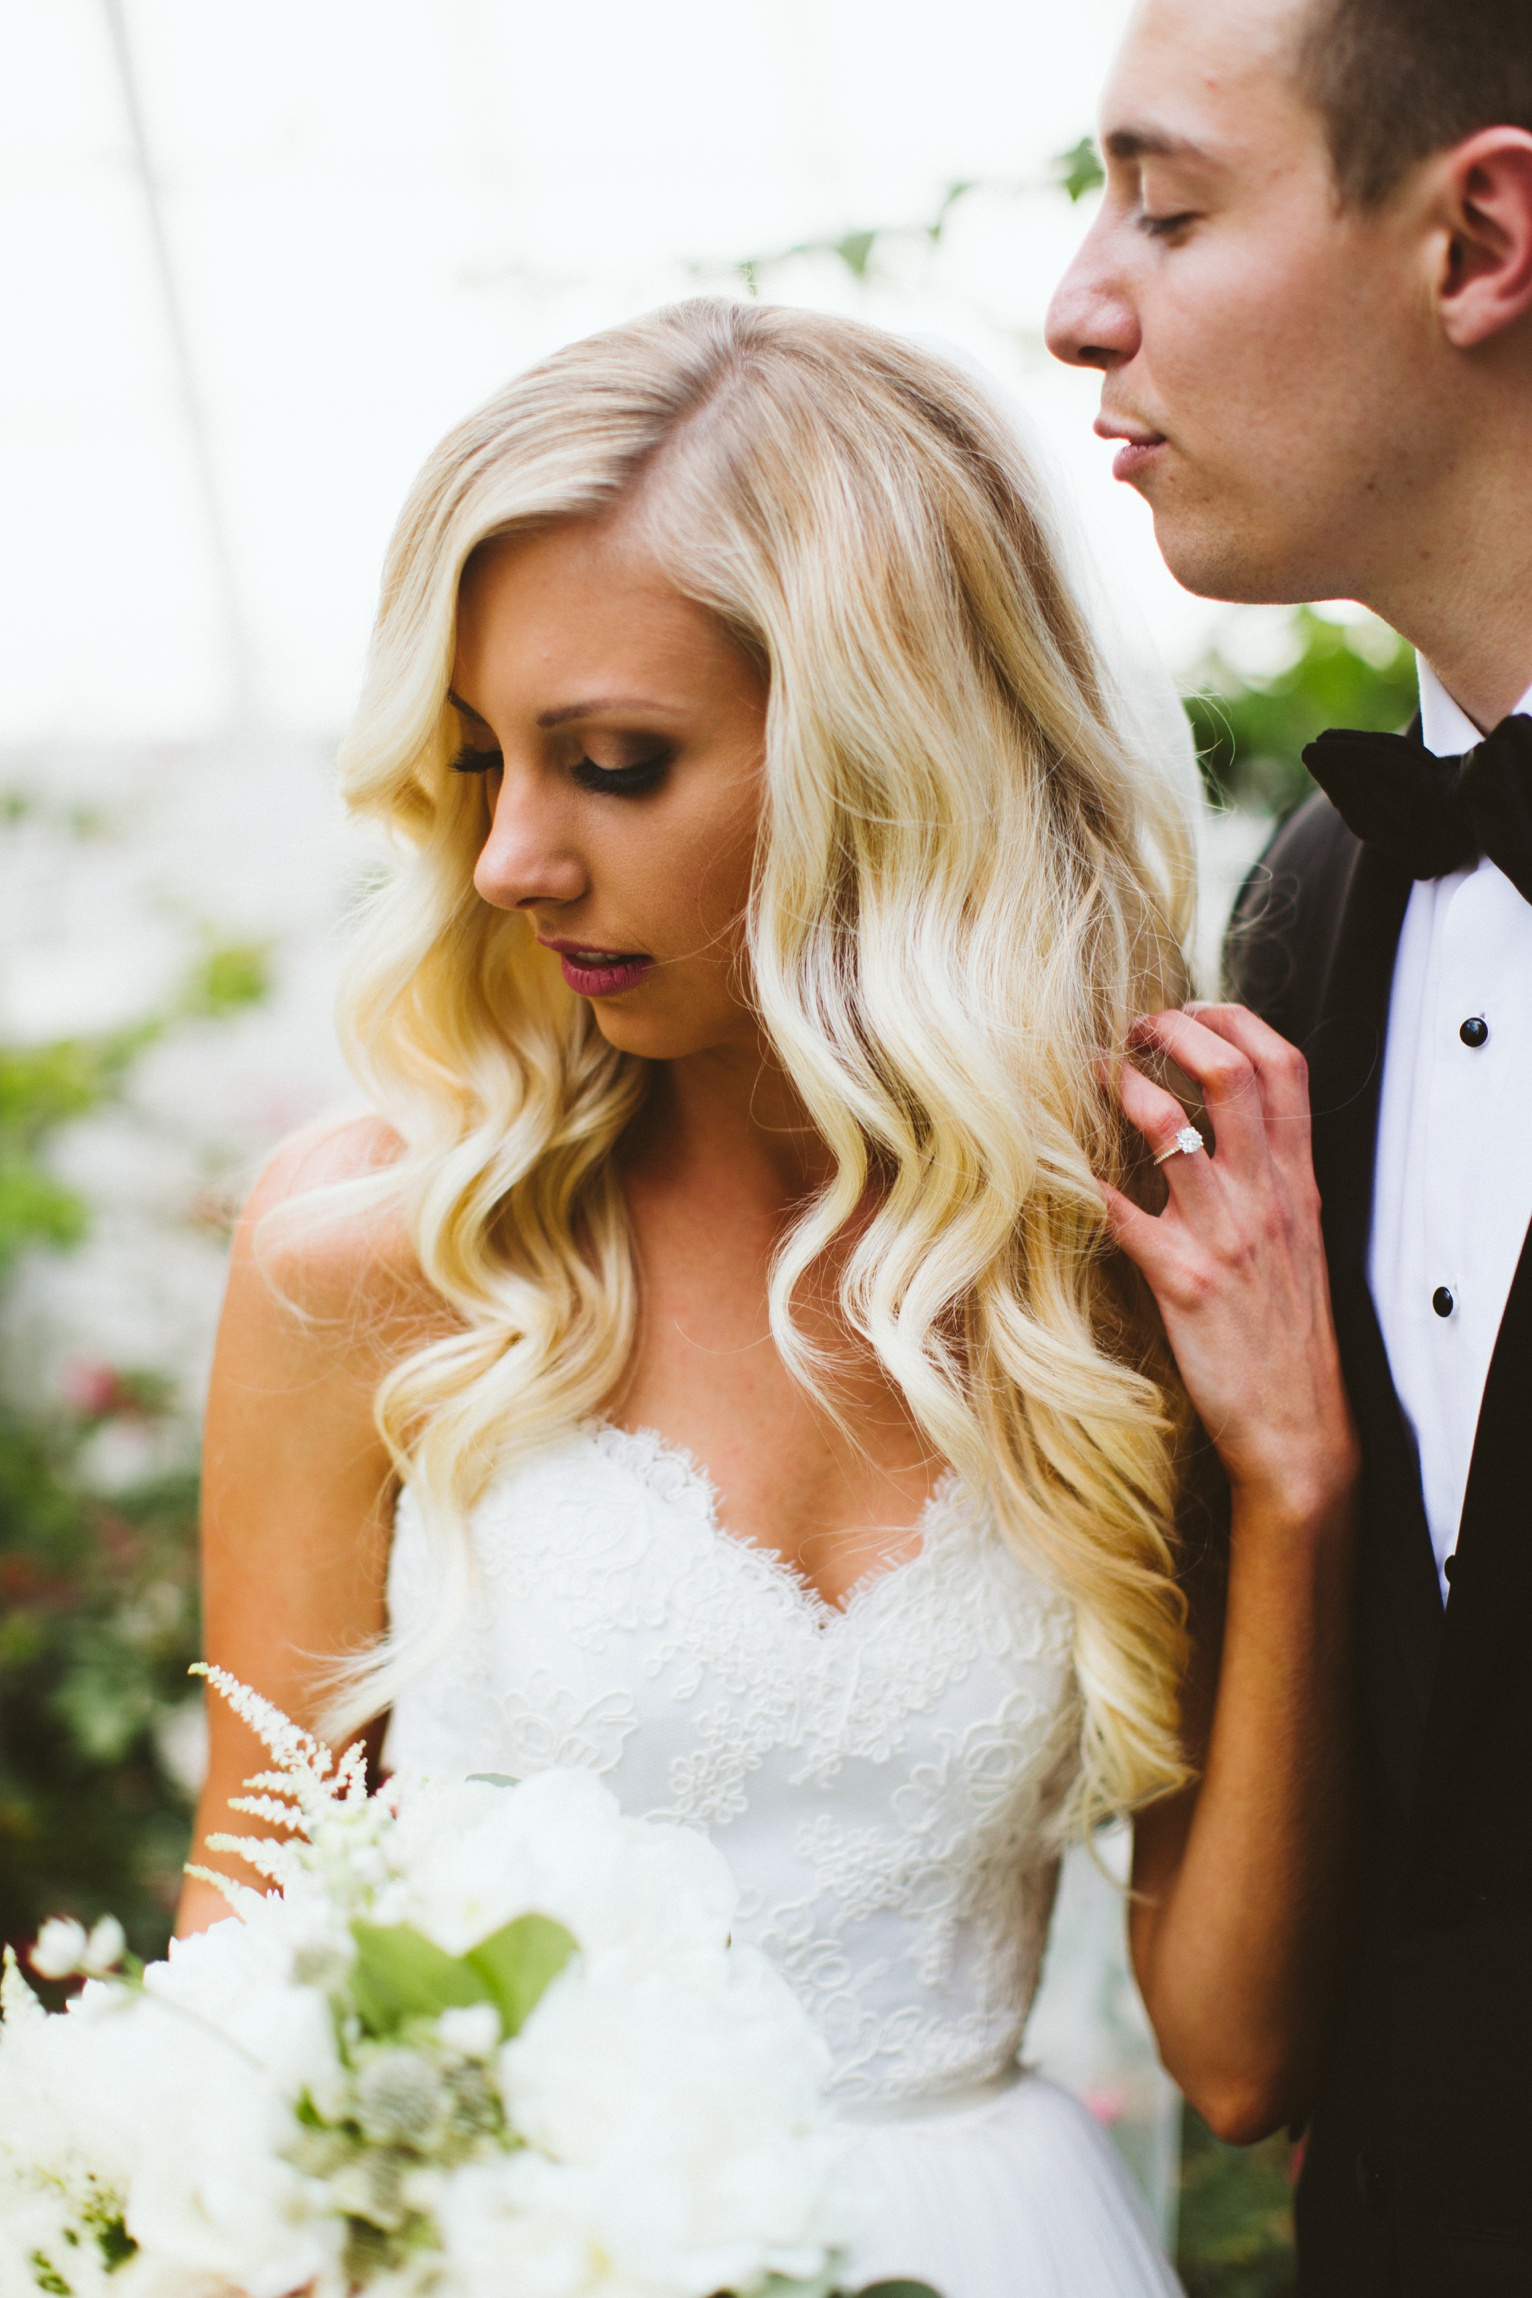 Dreamtownco.com_blog_Jordan&Lindsey_Wedding__0090.jpg